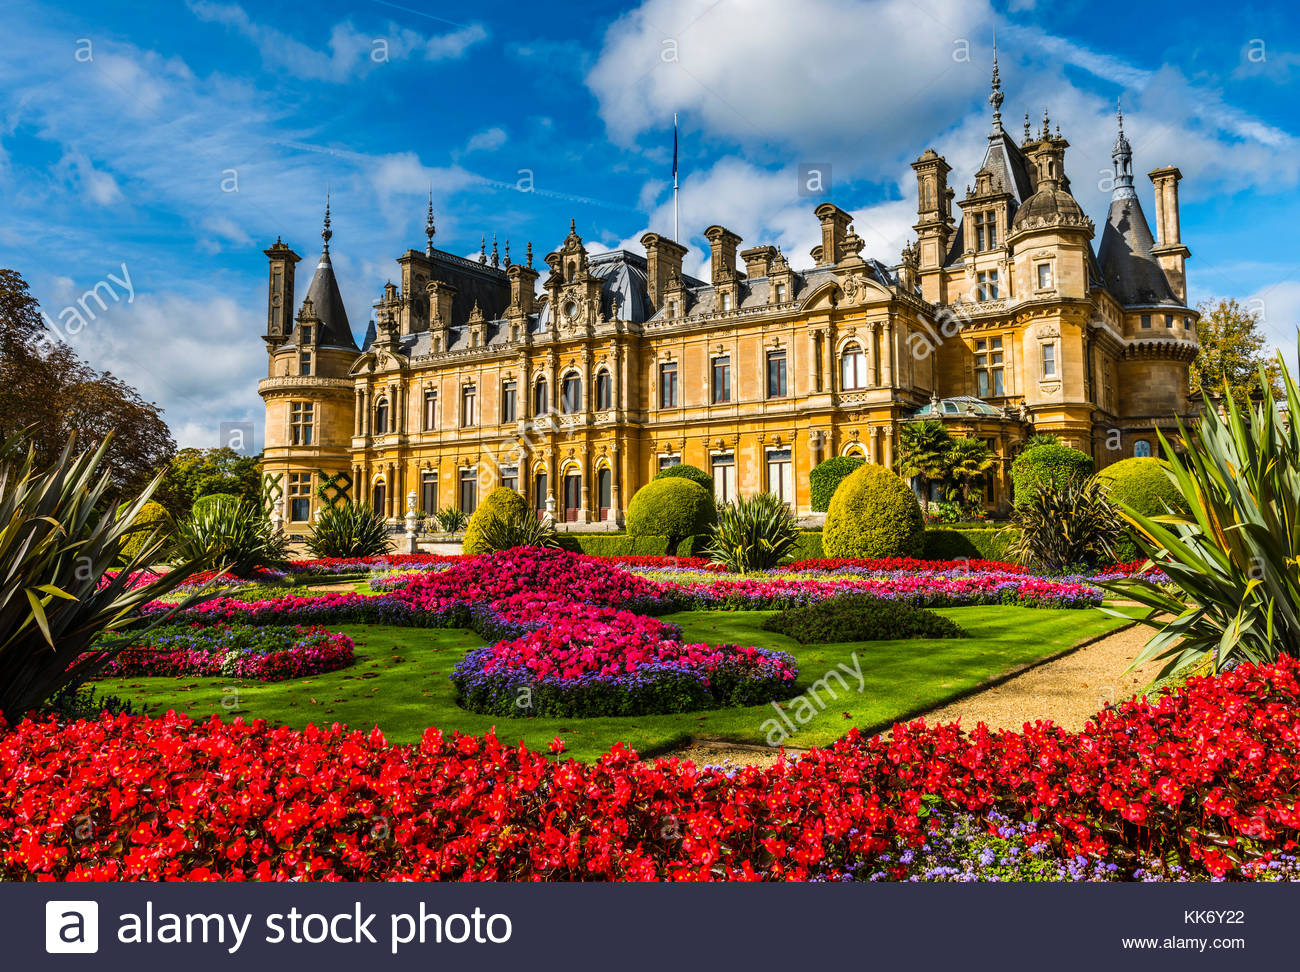 French-style chateau and parterre at Waddesdon Manor, Buckinghamshire, UK - Stock Image